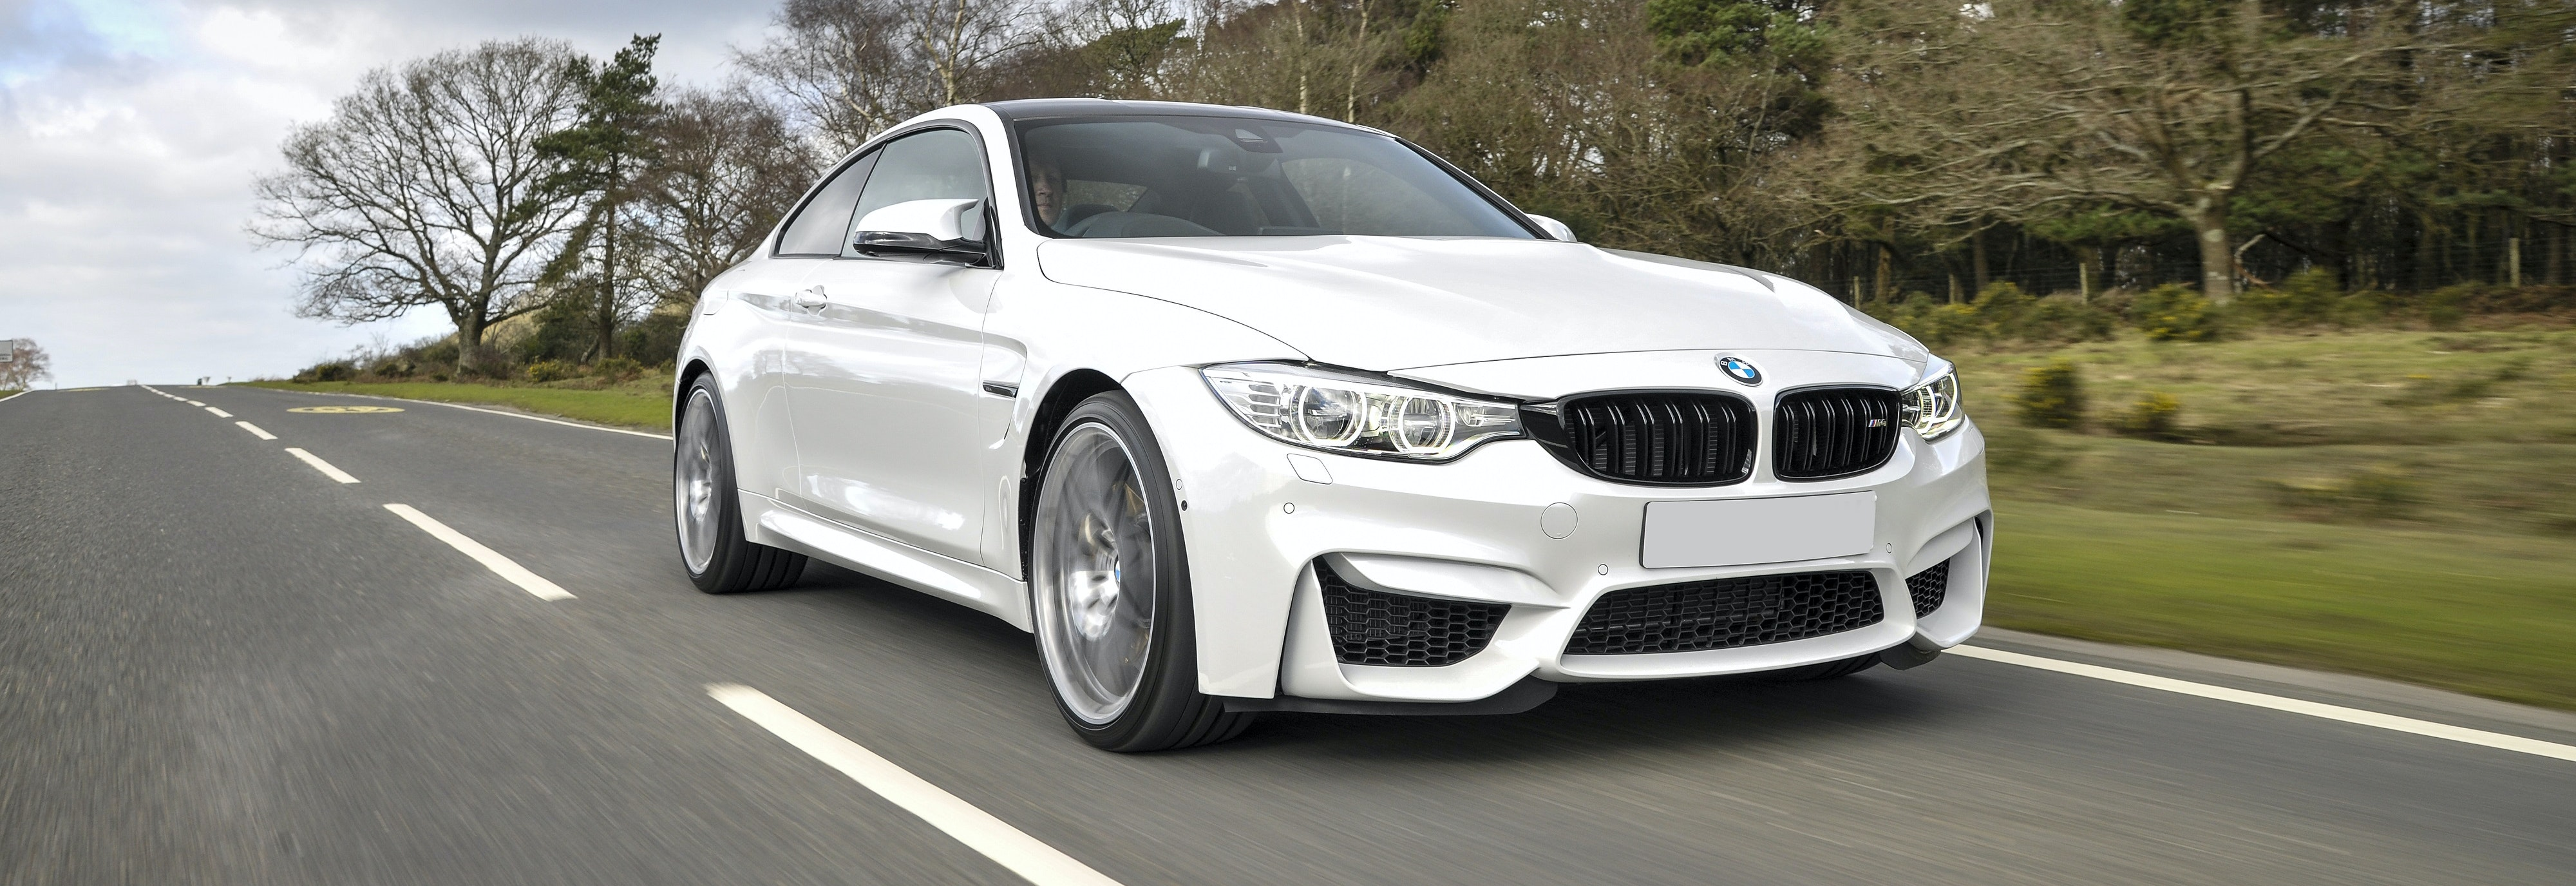 2018 Bmw M4 White Driving Front